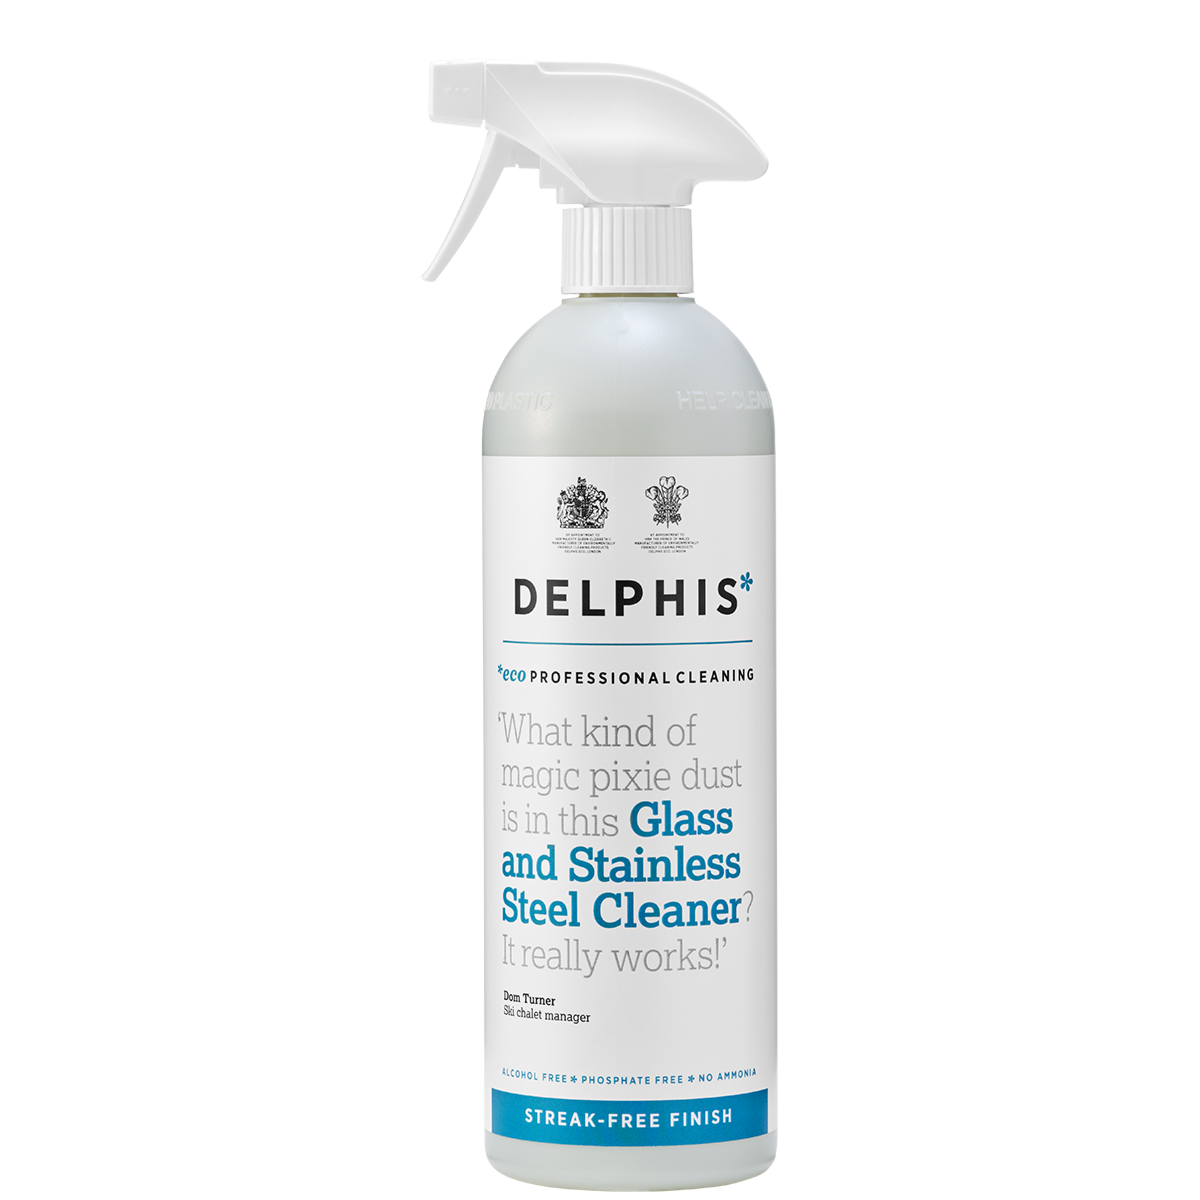 Delphis Glass and Stainless Steel Cleaner - 700ml